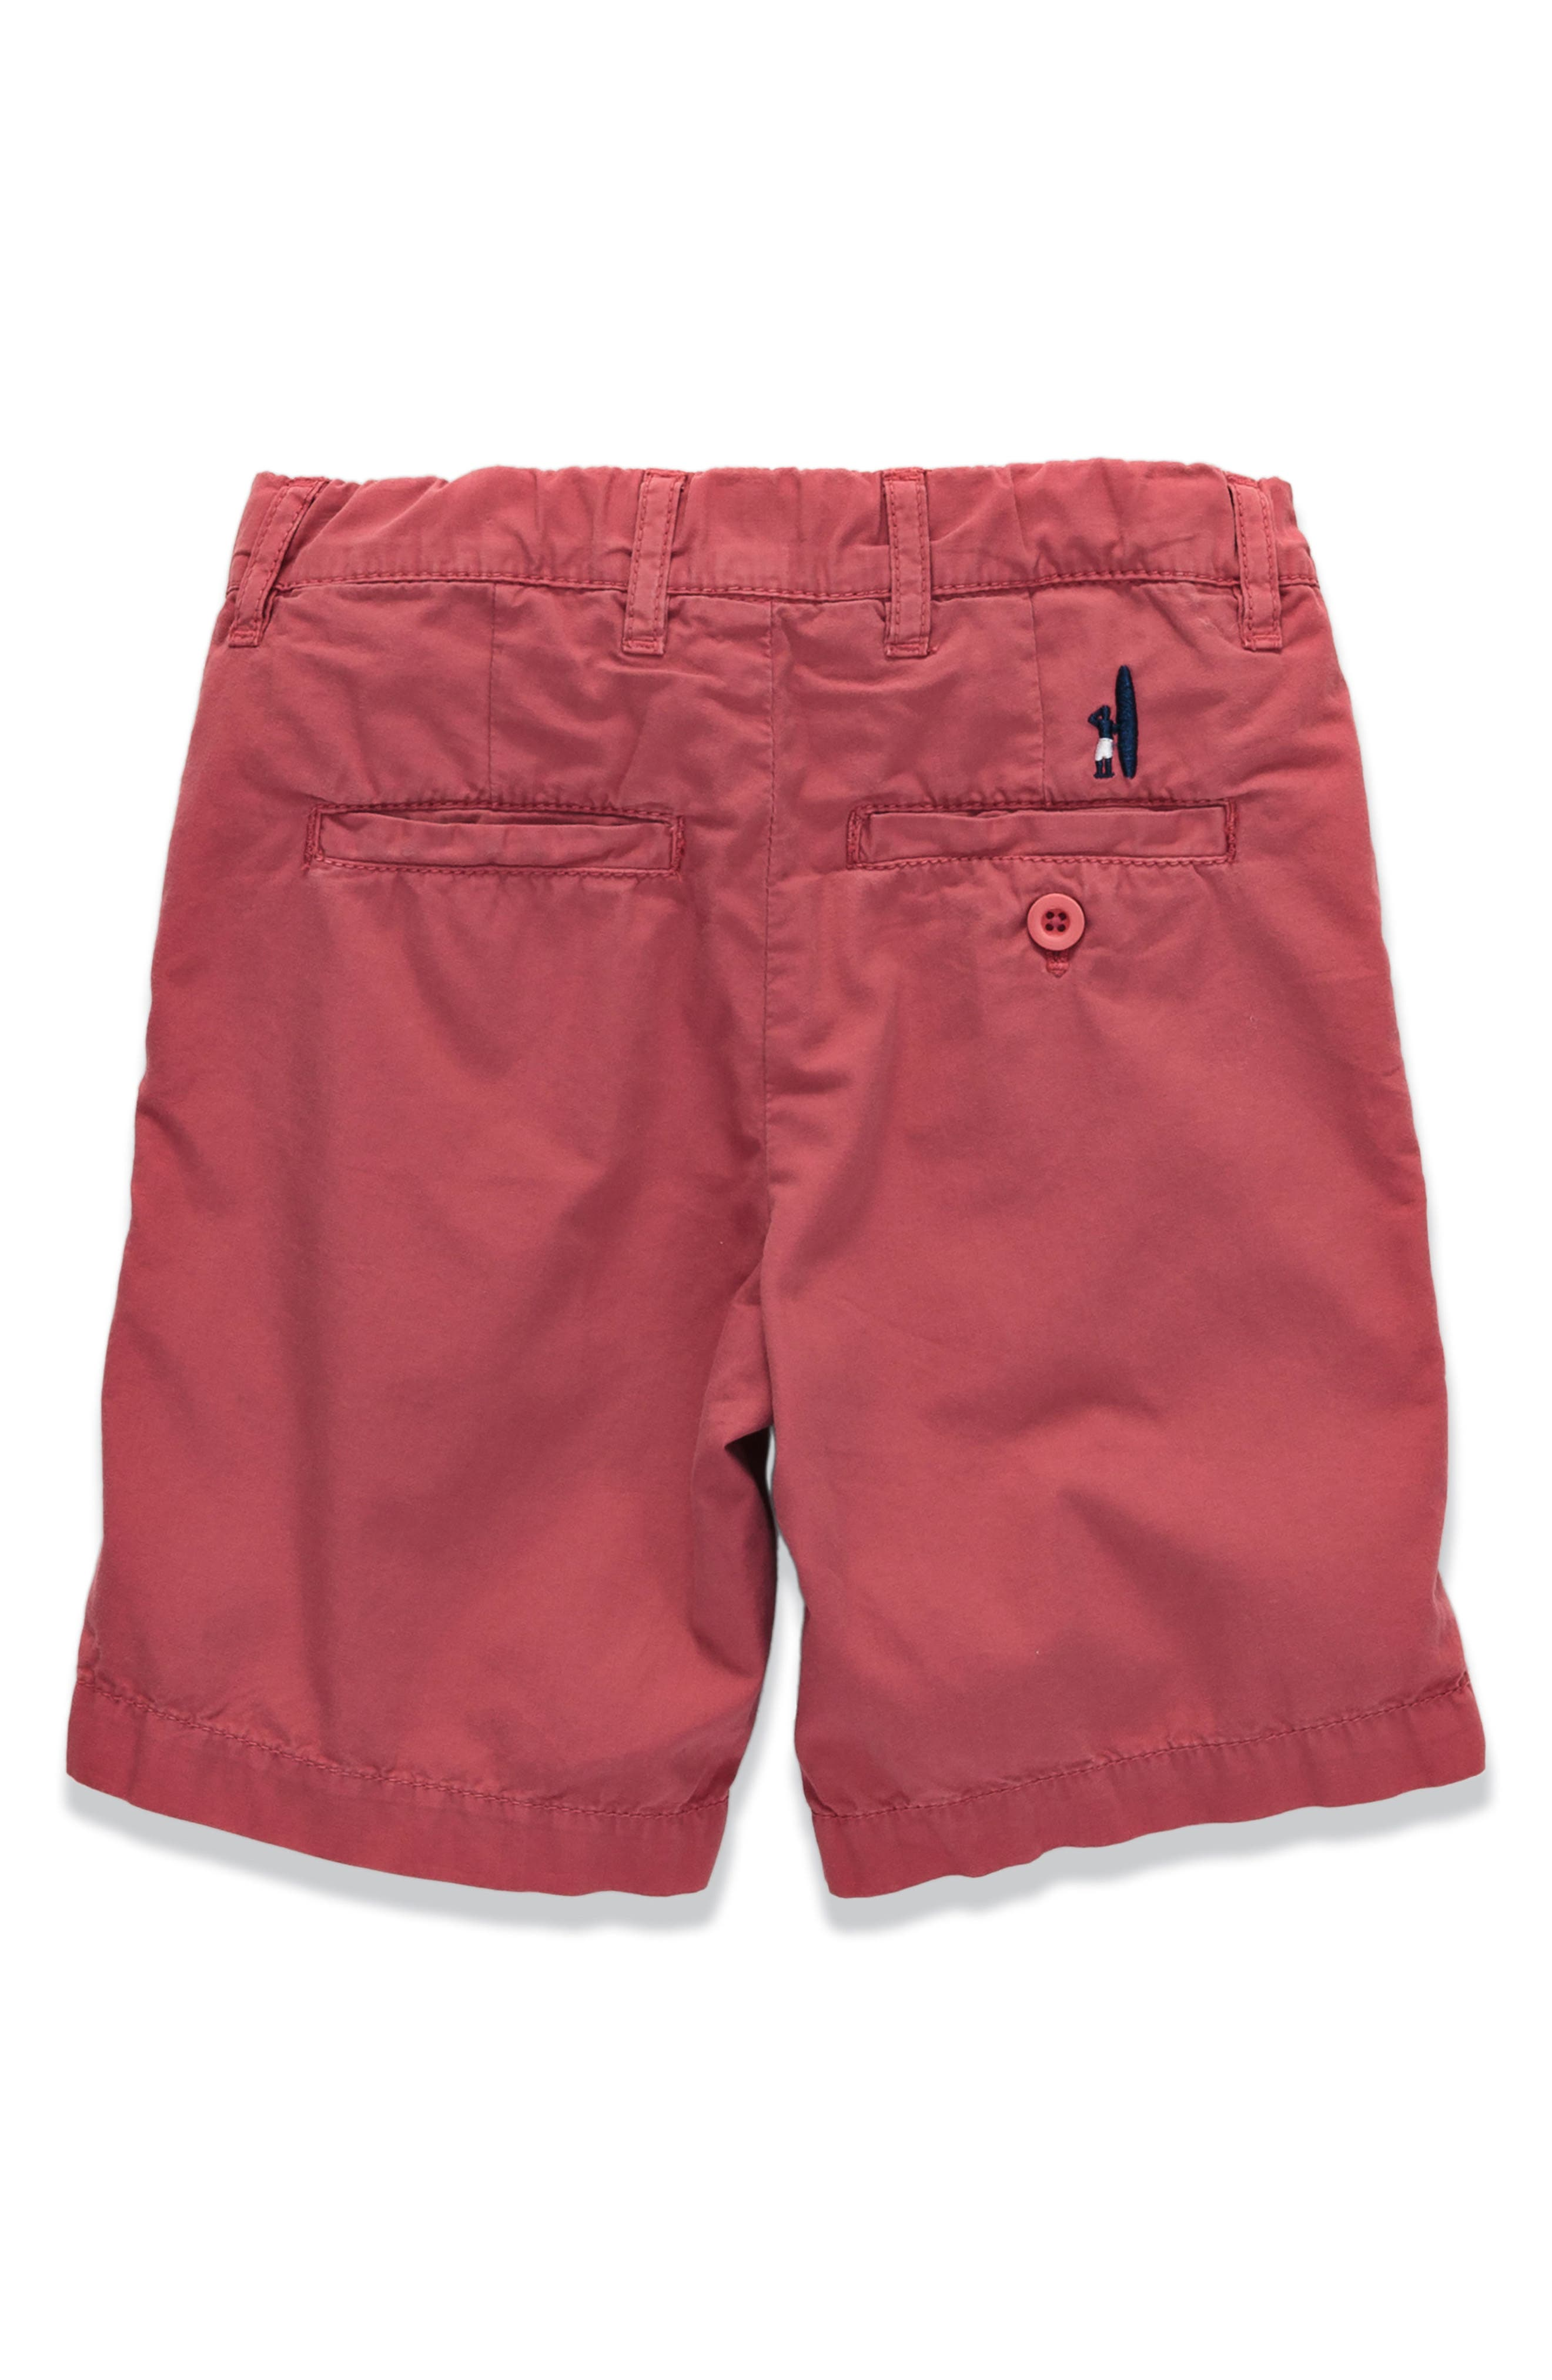 Derby Poplin Shorts,                             Main thumbnail 3, color,